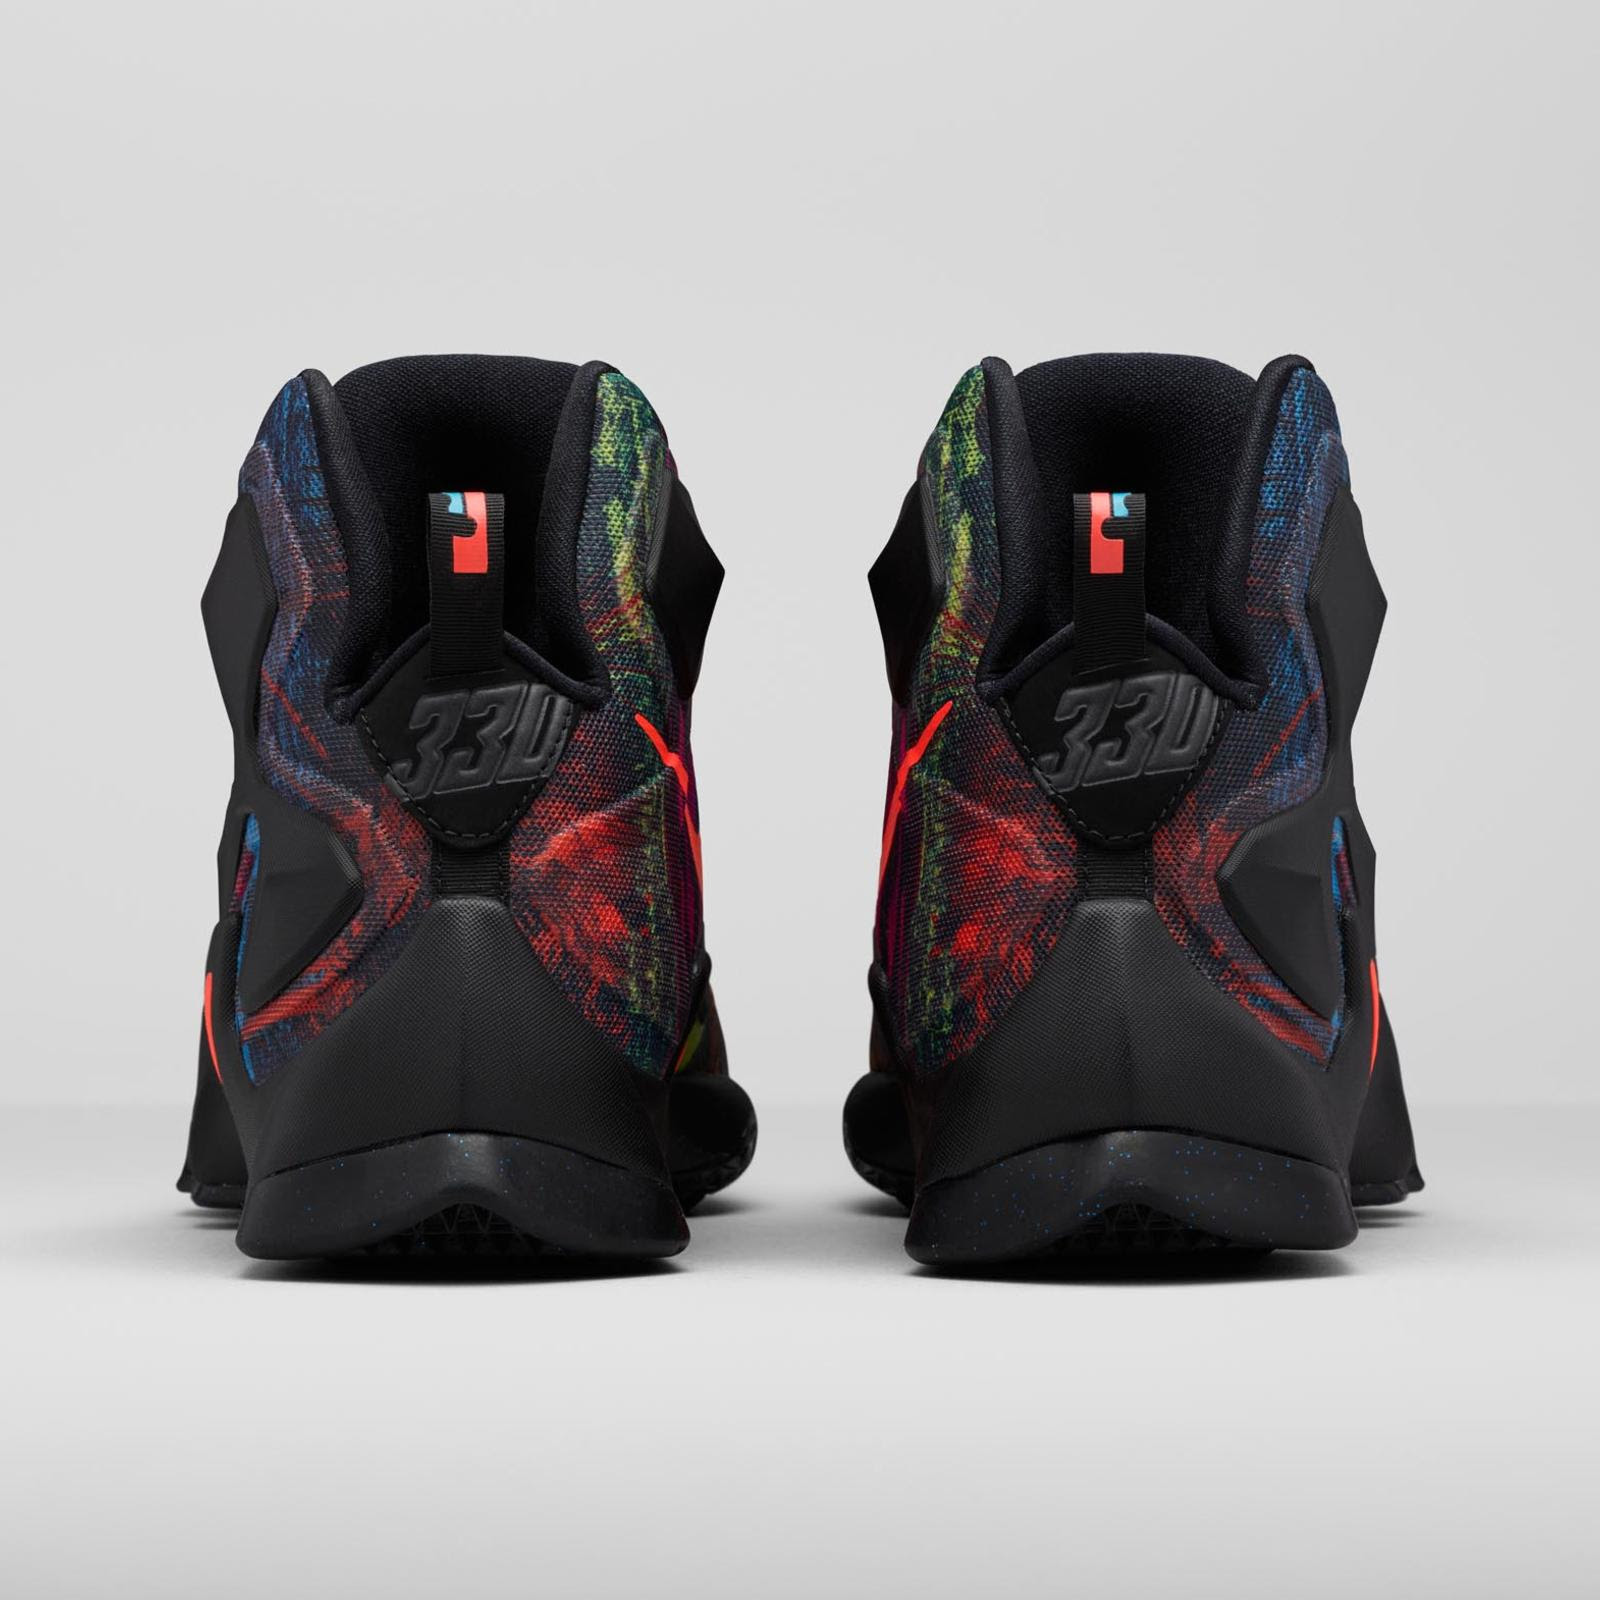 ac110229a83d The shoe will be available starting tomorrow, November 21, at nike.com and  select retail stores around the globe.